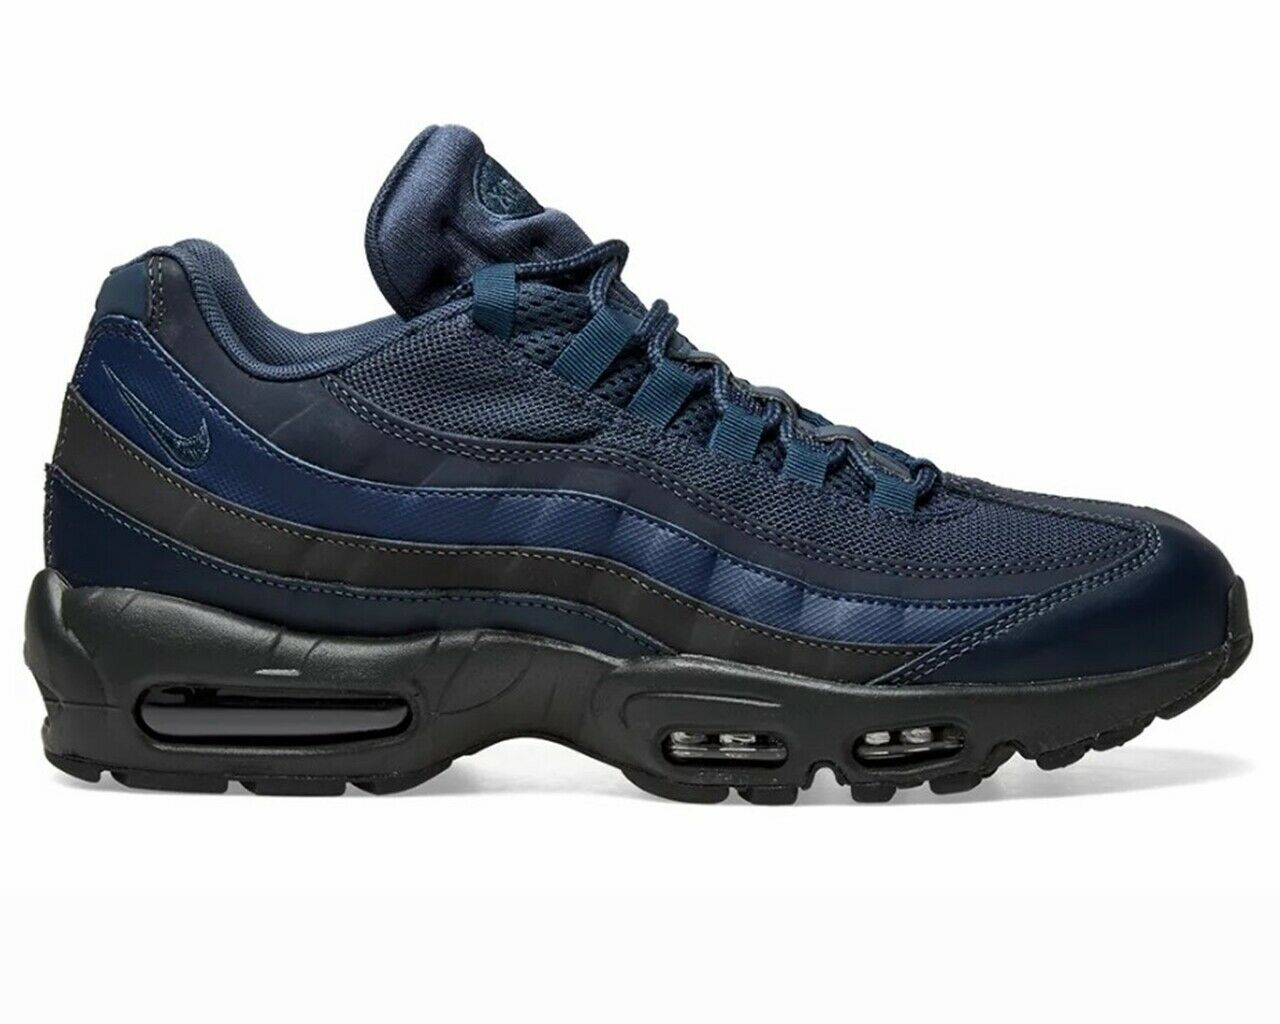 Nike Air Max 95 Essential 749766 400 Mens Trainers bluee Gym Running shoes